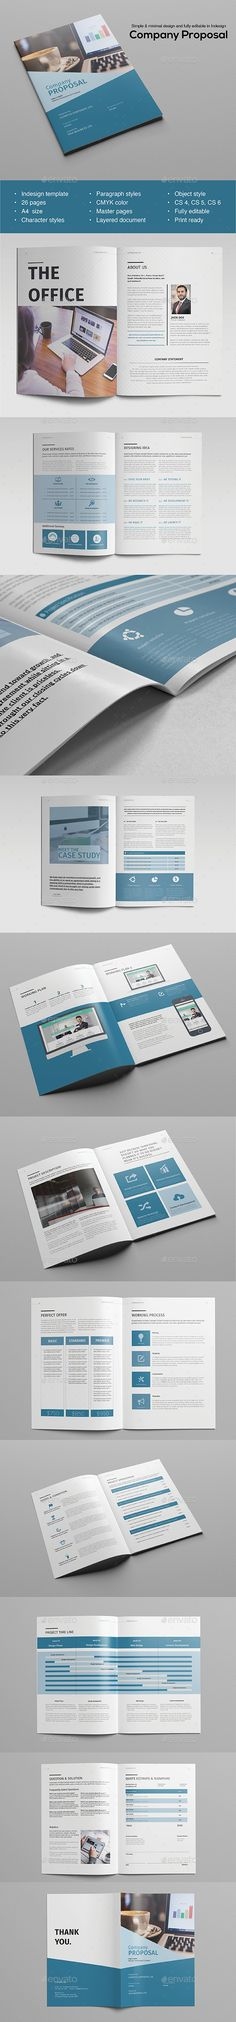 Proposal Template - #Proposals & #Invoices Stationery Download here: https://graphicriver.net/item/proposal-template/19455149?ref=alena994